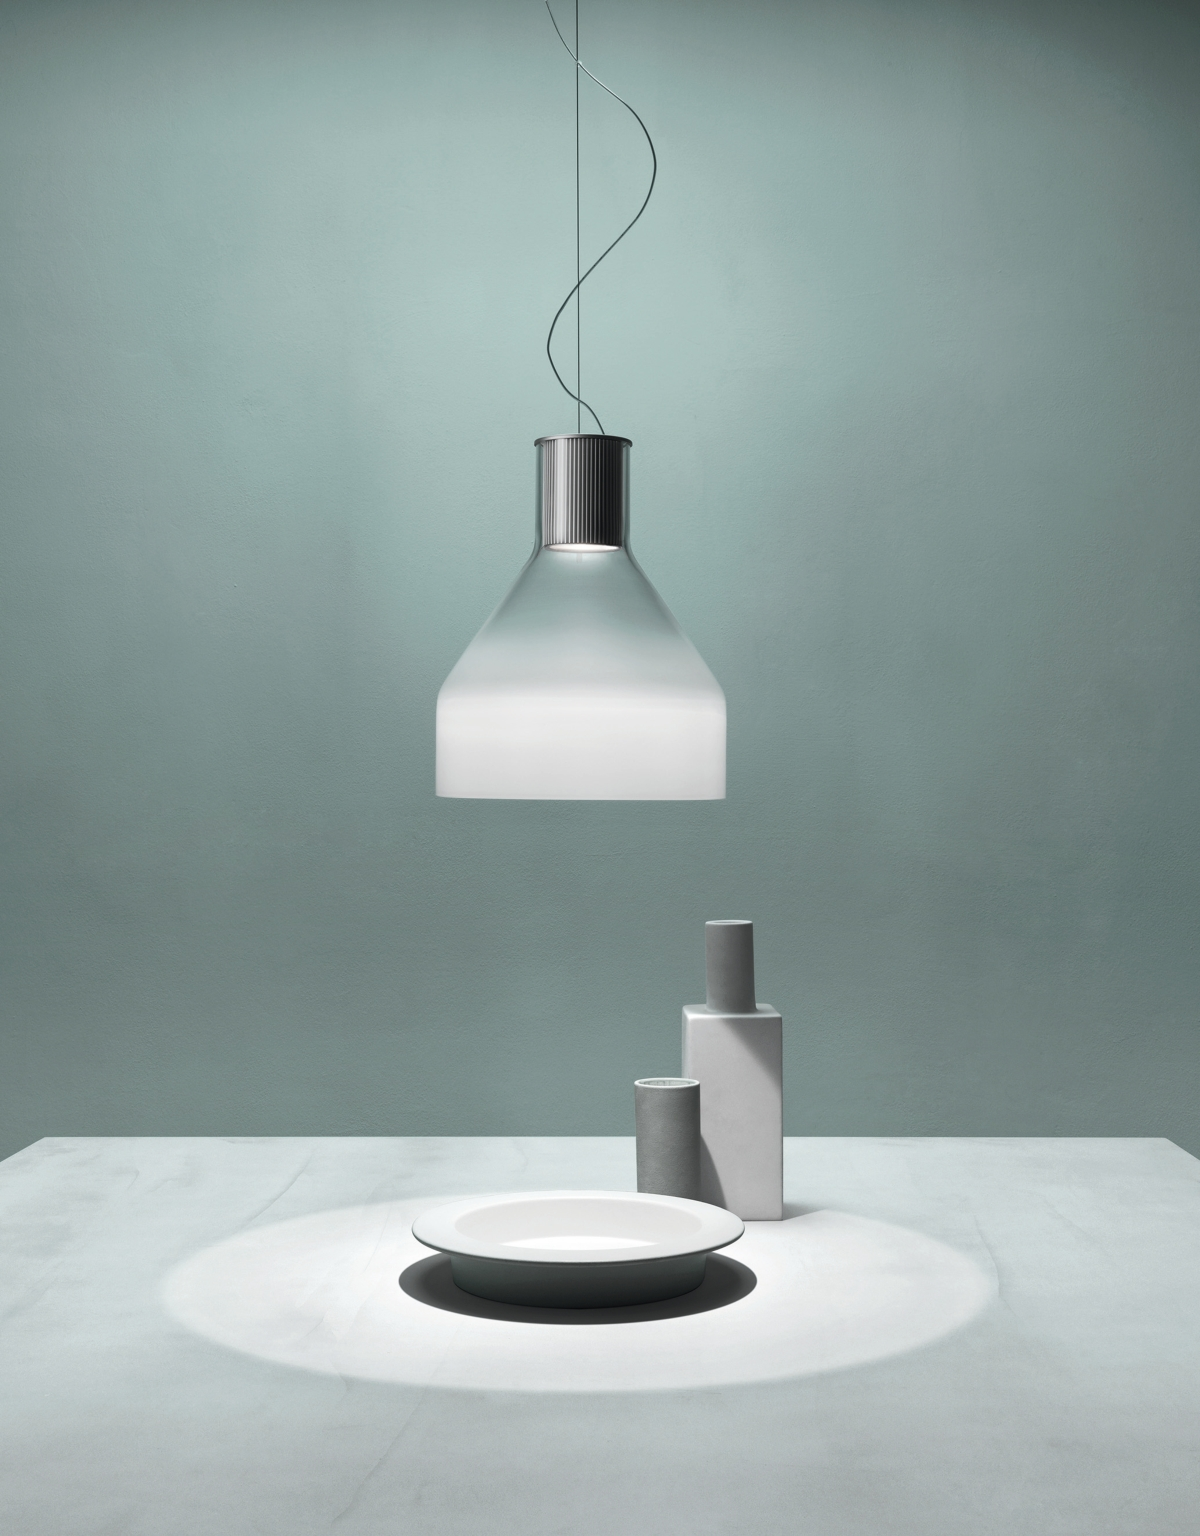 CAIIGO Suspension lamp in September